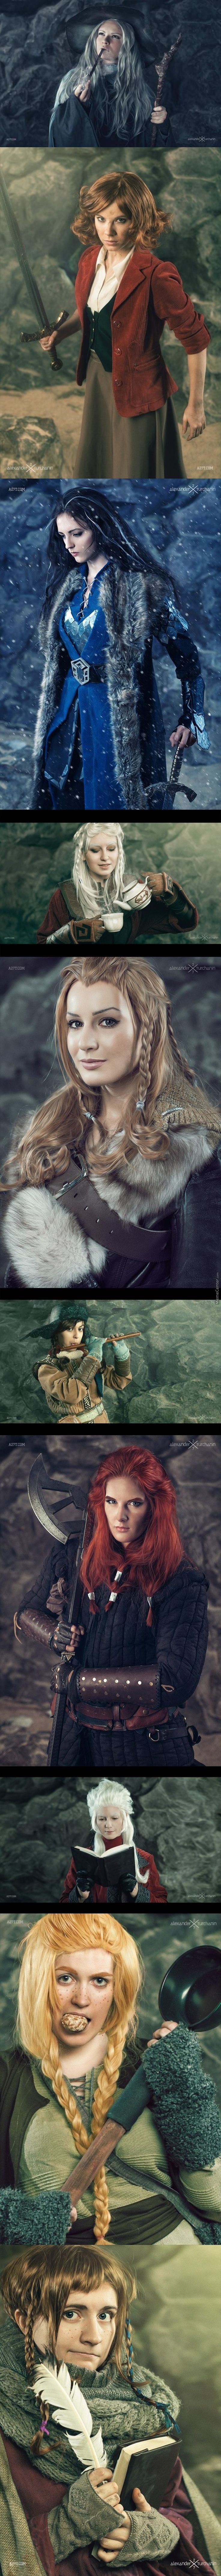 Genderbent Hobbit Cosplays - DUDE!!! Now I want to be the King (Queen?) under the mountain!